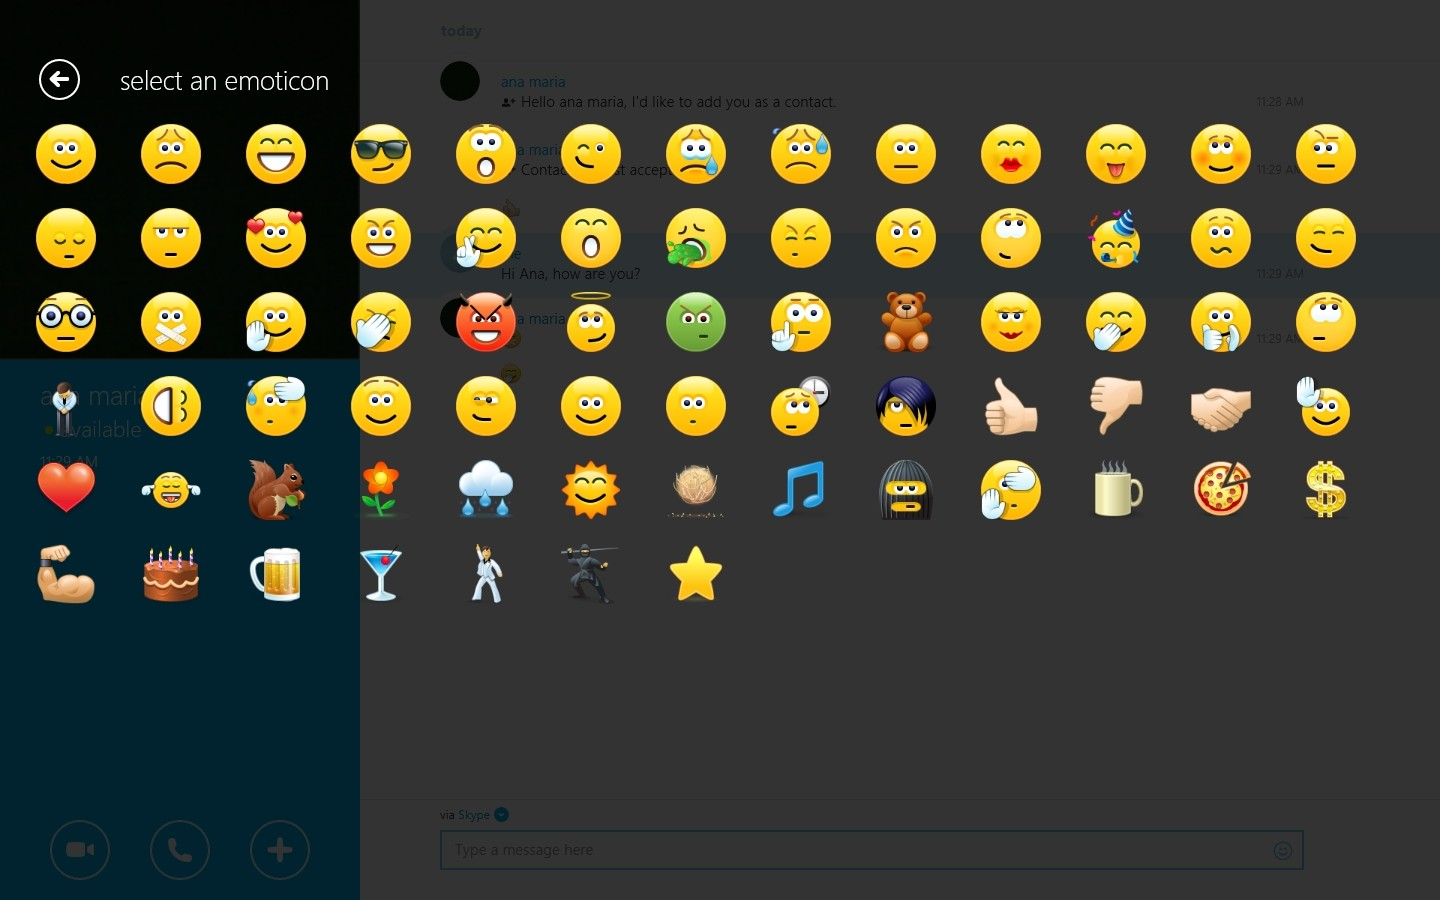 Microsoft Removes Middle Finger Emoticon From Skype